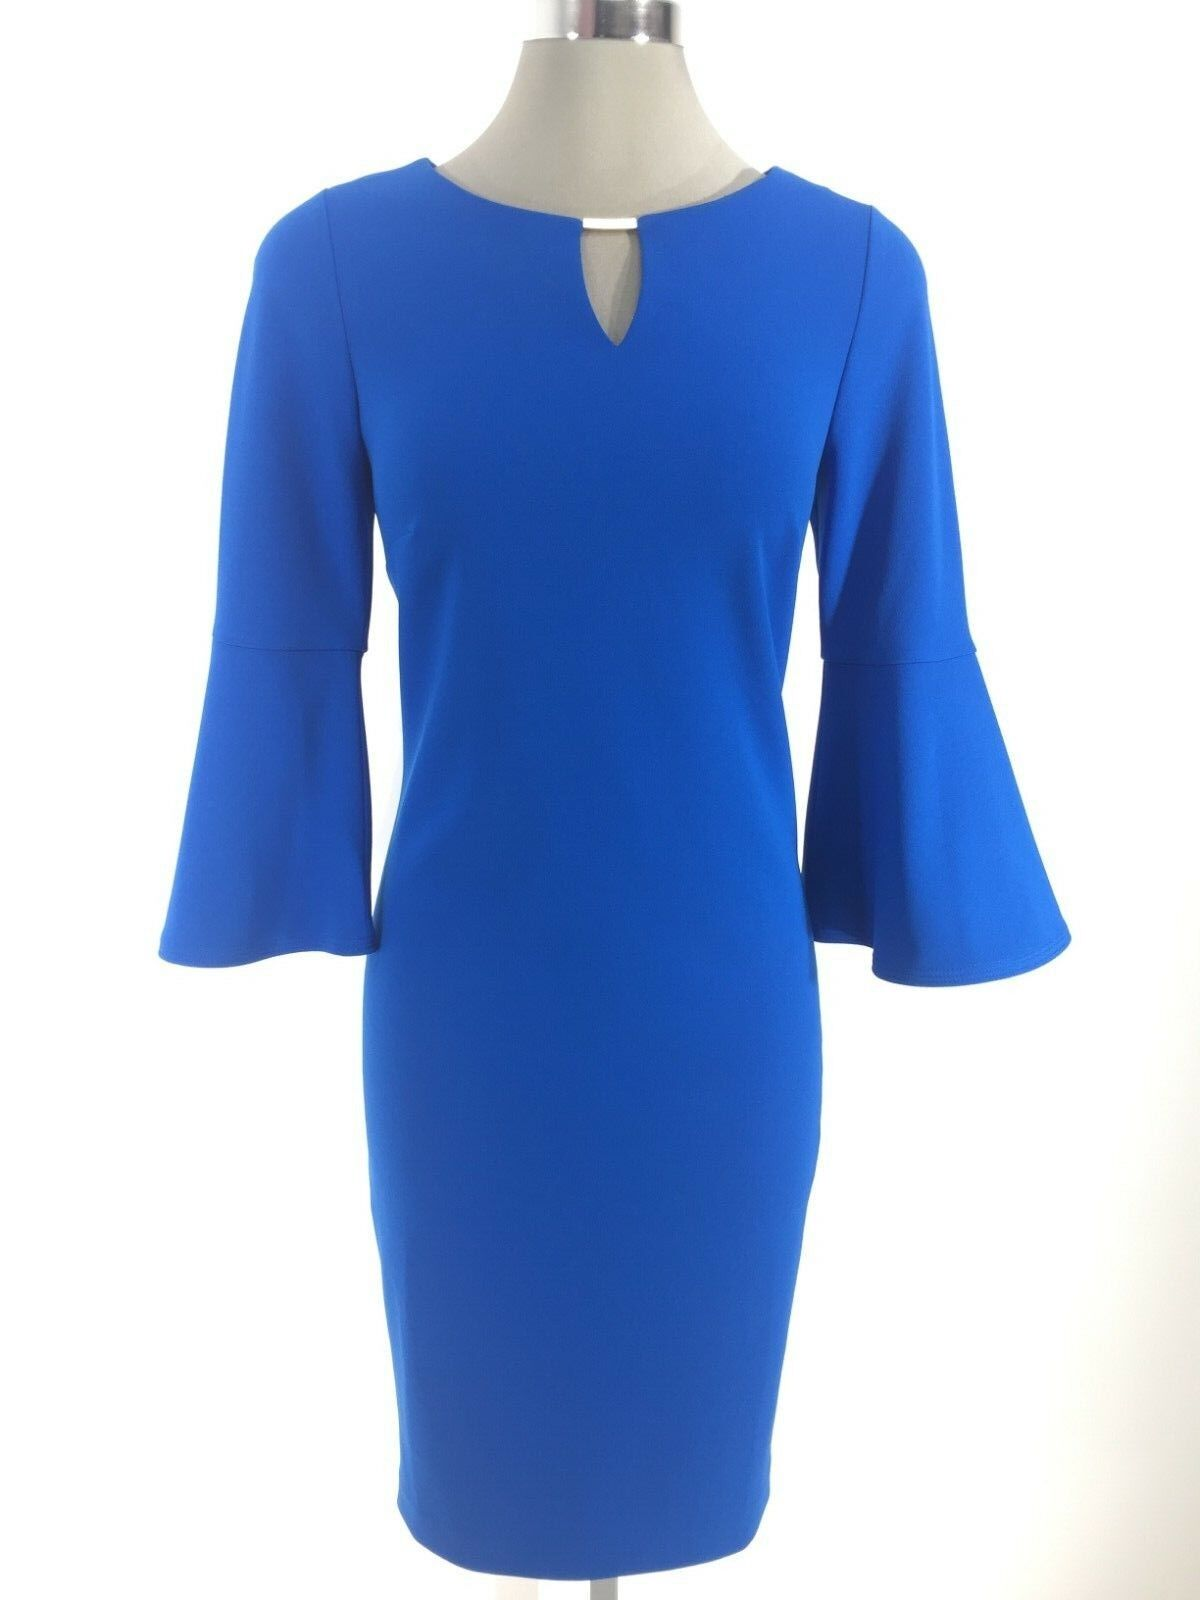 DKNY NWT Exquisite TRUE Blau Dress w 3 4 bell sleeves and Gold neck ornament 4